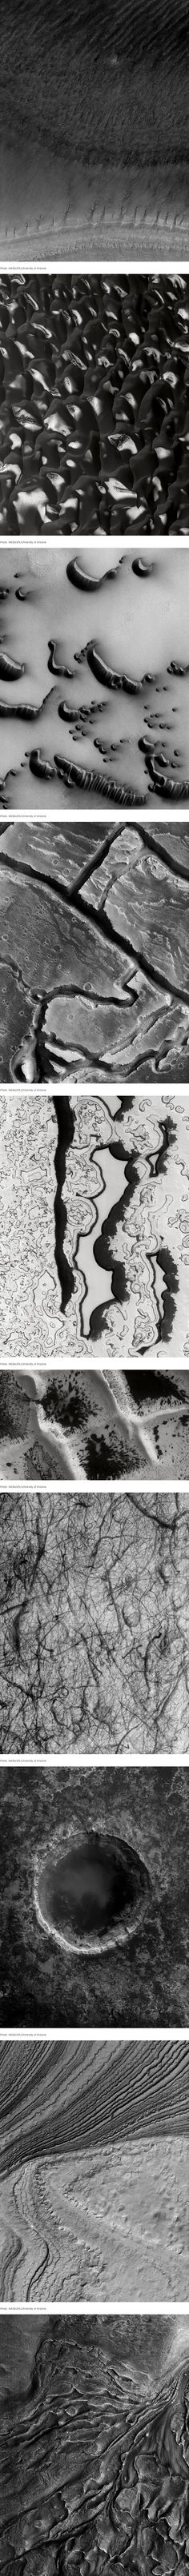 Stunning Photos of the Red Planet in Black and White by NASA JPL University of Arizona wired.com